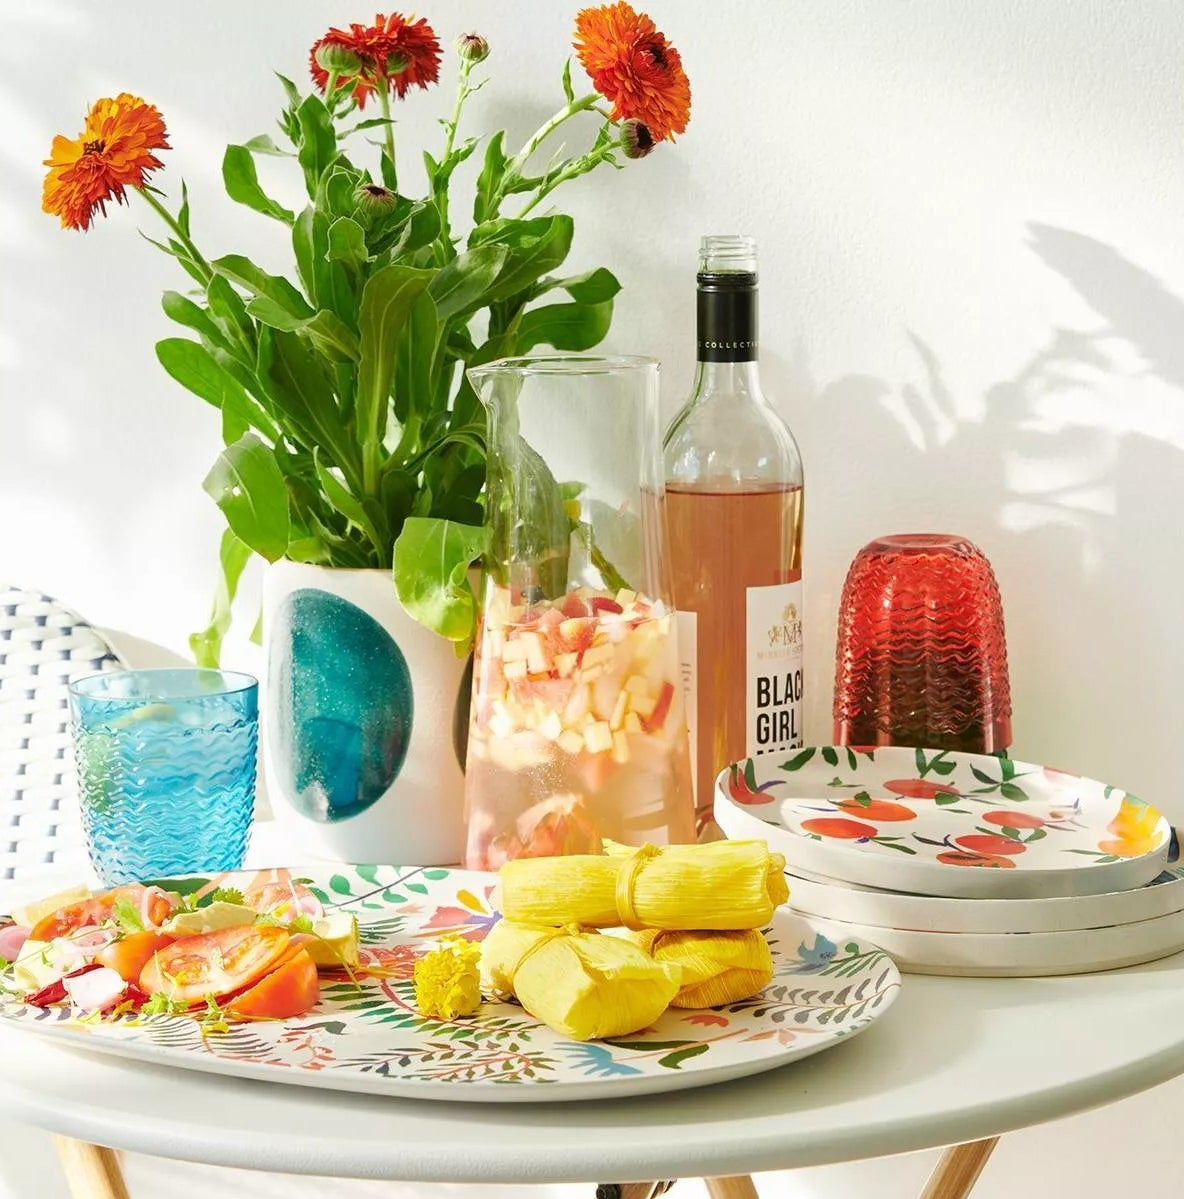 The floral serving plates are holding carious types of food and are surrounded by beverages and other decor like flowers